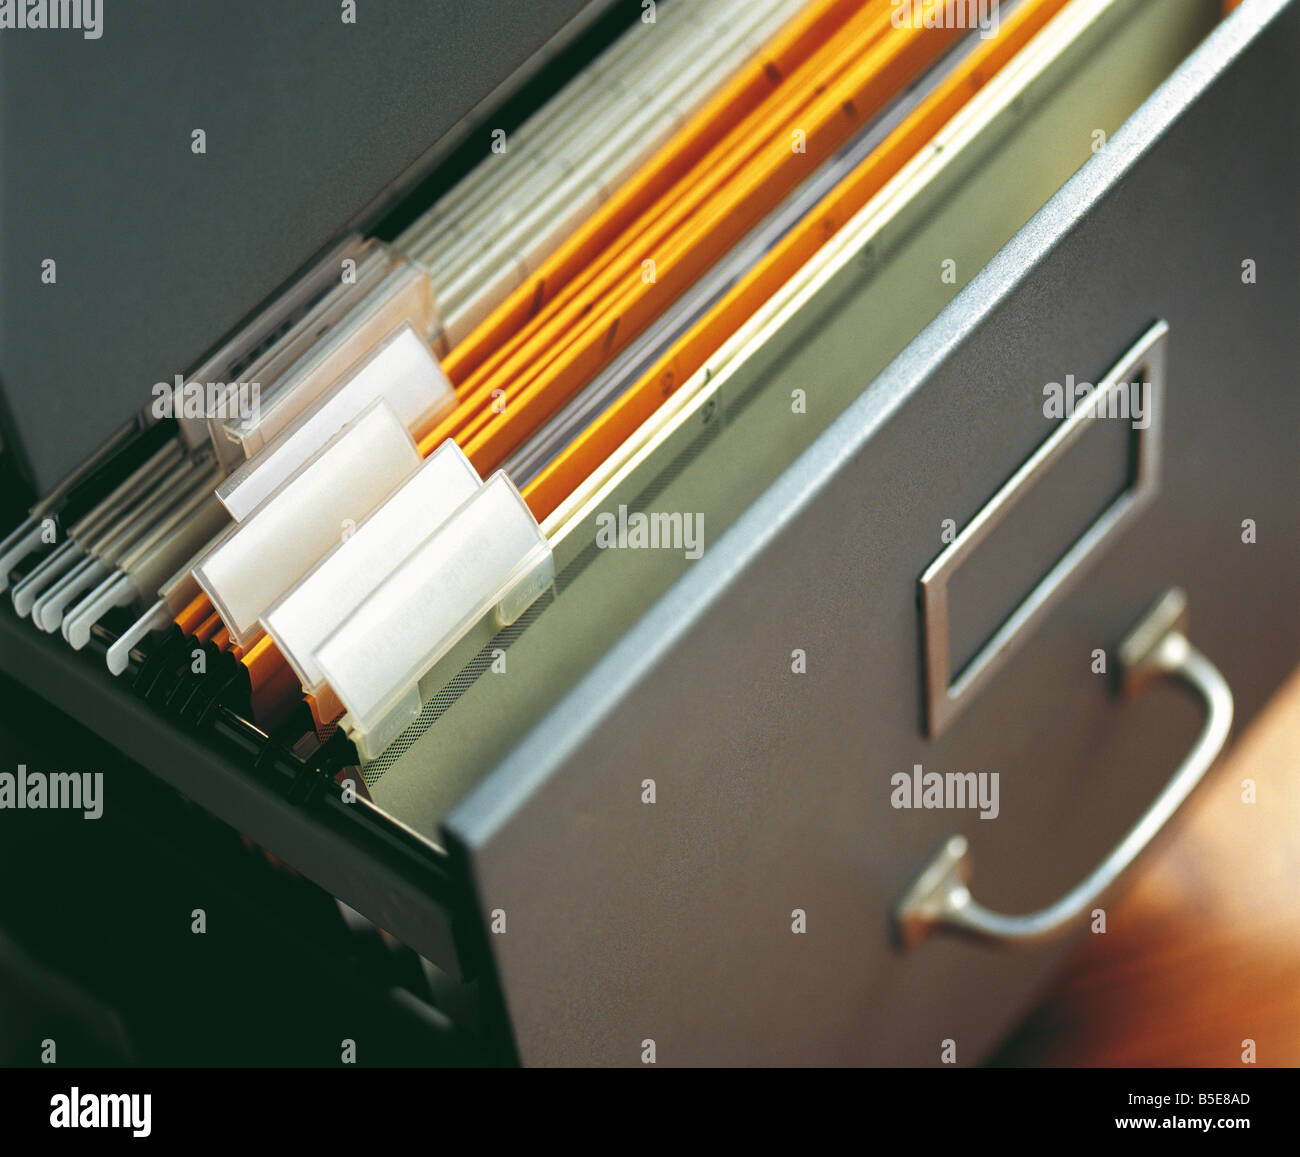 Hanging files in a drawer - Stock Image